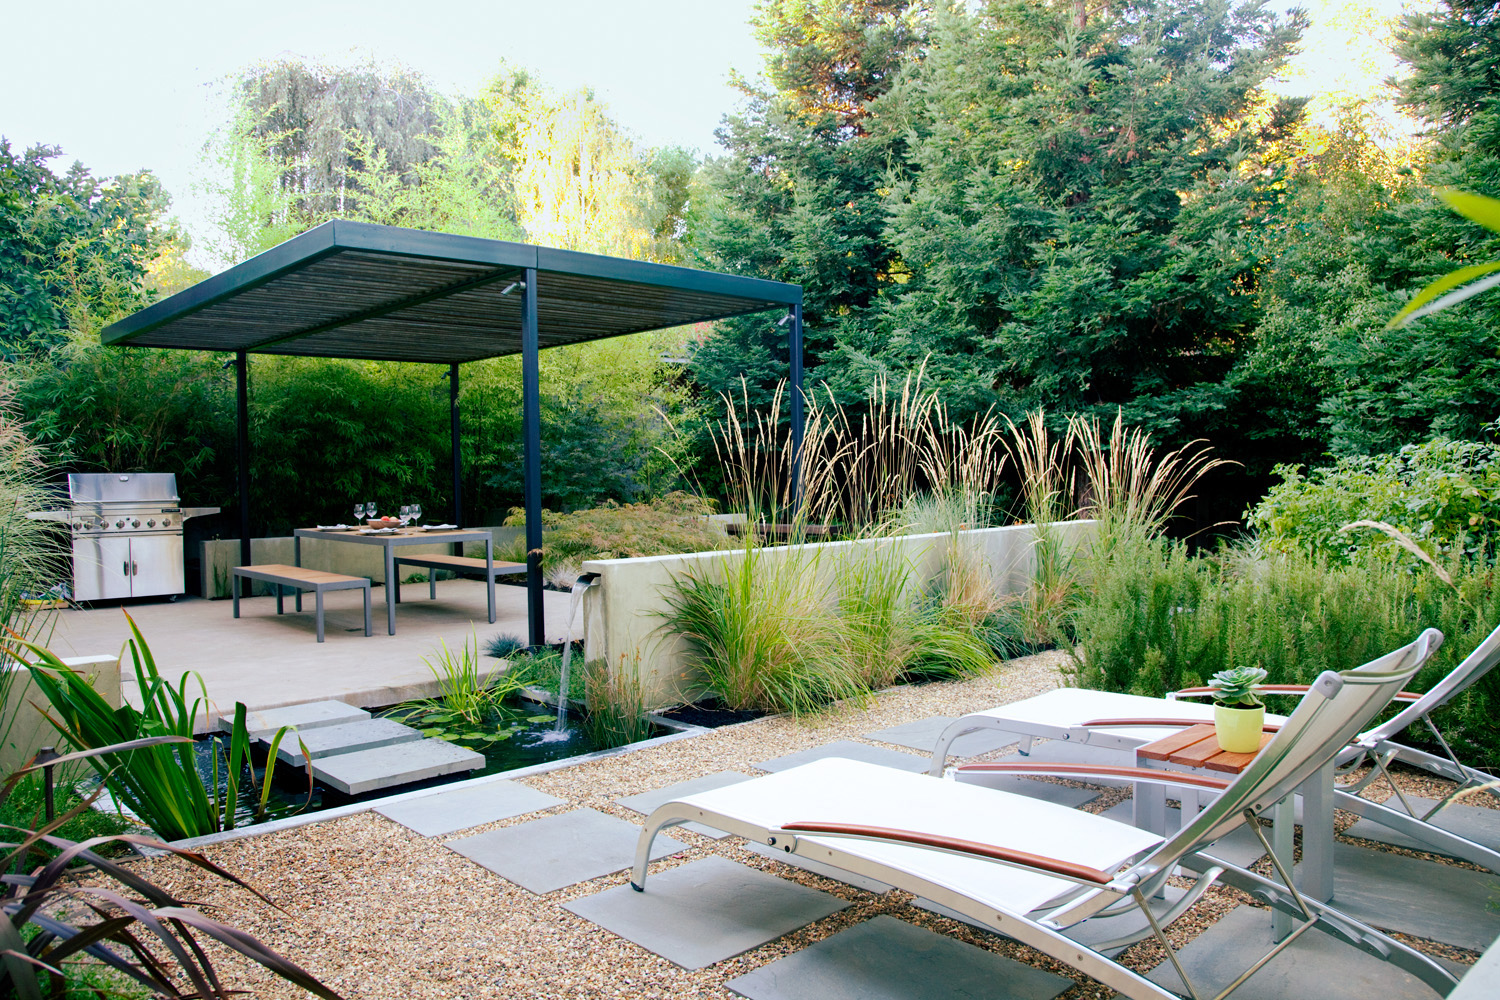 4 Outdoor Rooms, 1 Small Space Design Ideas